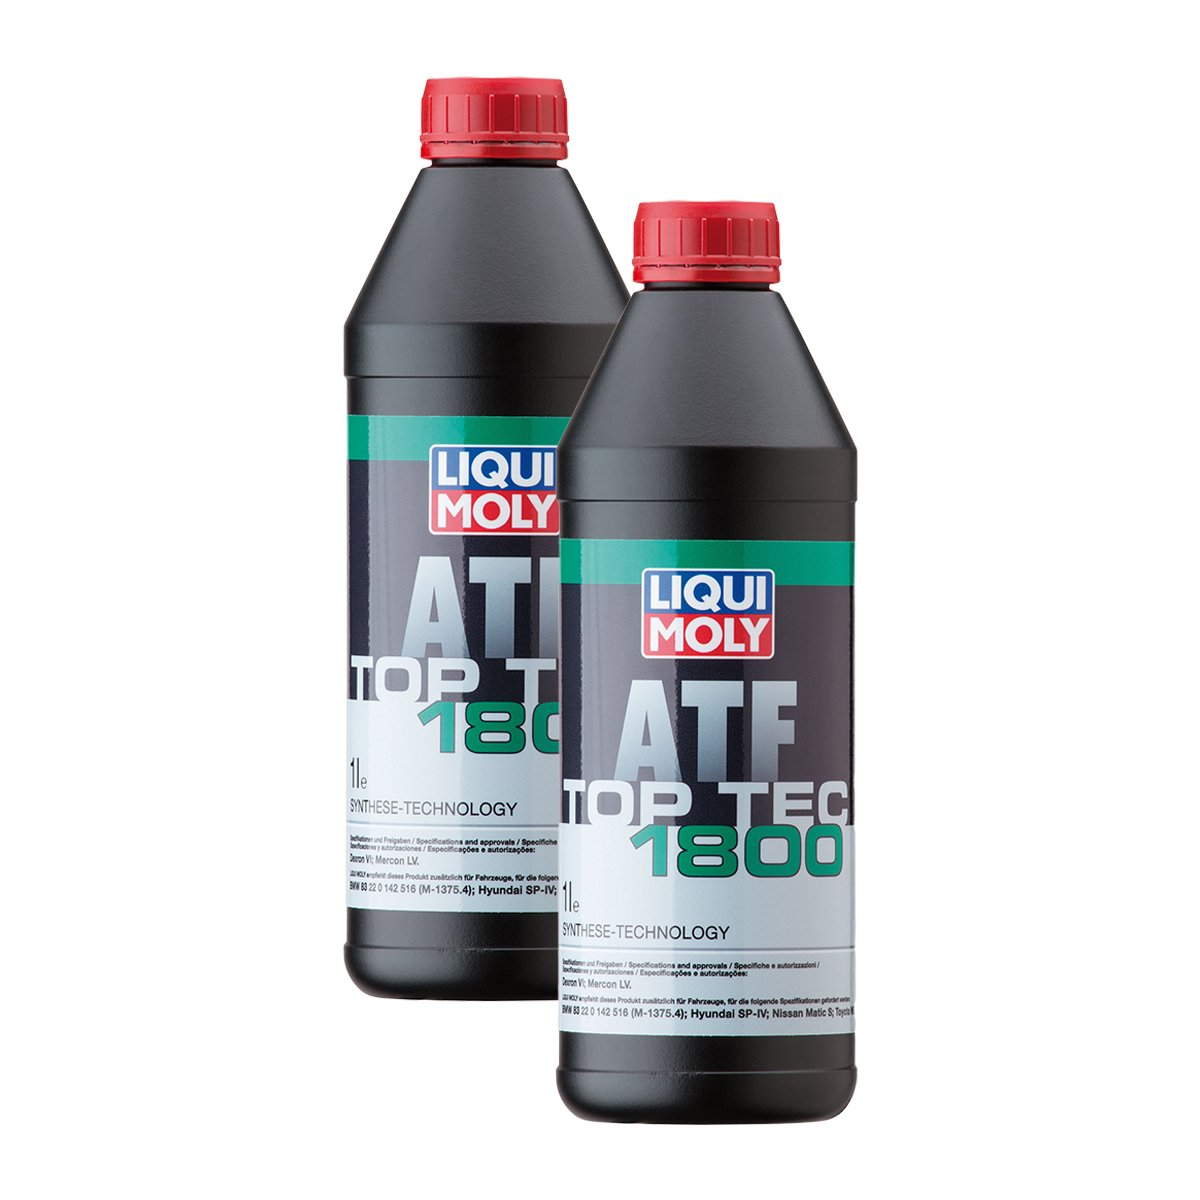 2x Liqui Moly 3687 Top Tec 1800 ATF Automatic Gearbox Oil 1